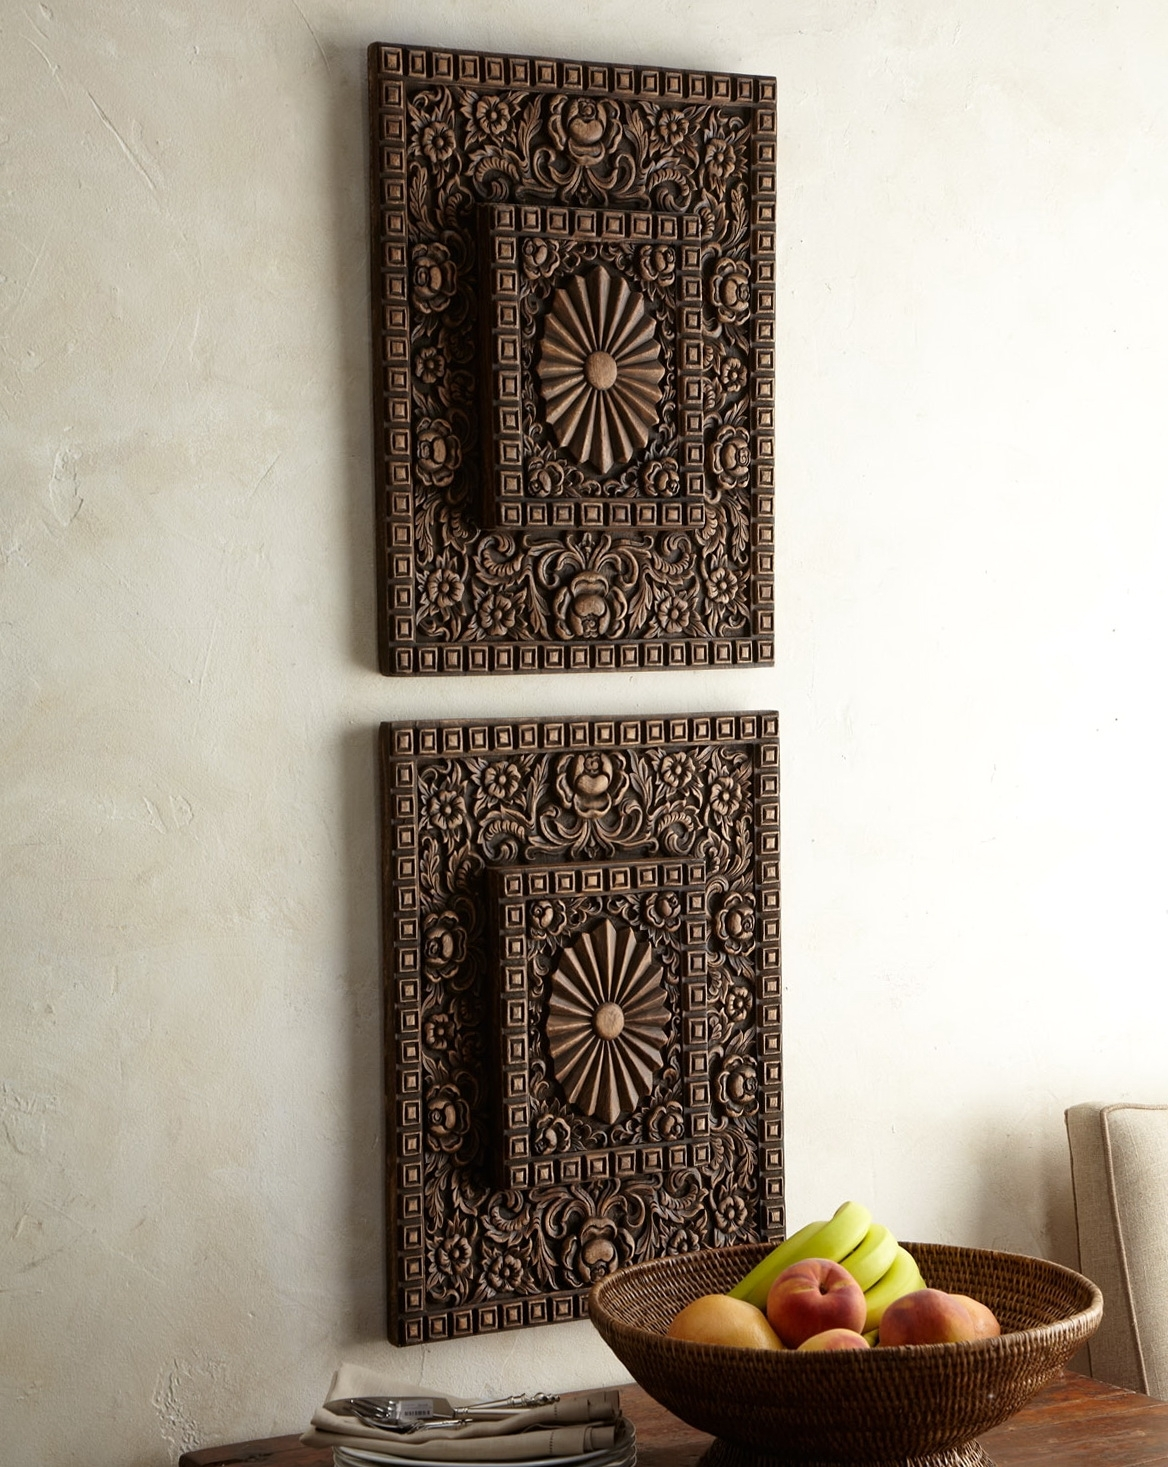 Amazing Asian Wall Decor – Asian Wall Decor Ideas Designs Intended For Most Current Asian Wall Accents (View 6 of 15)